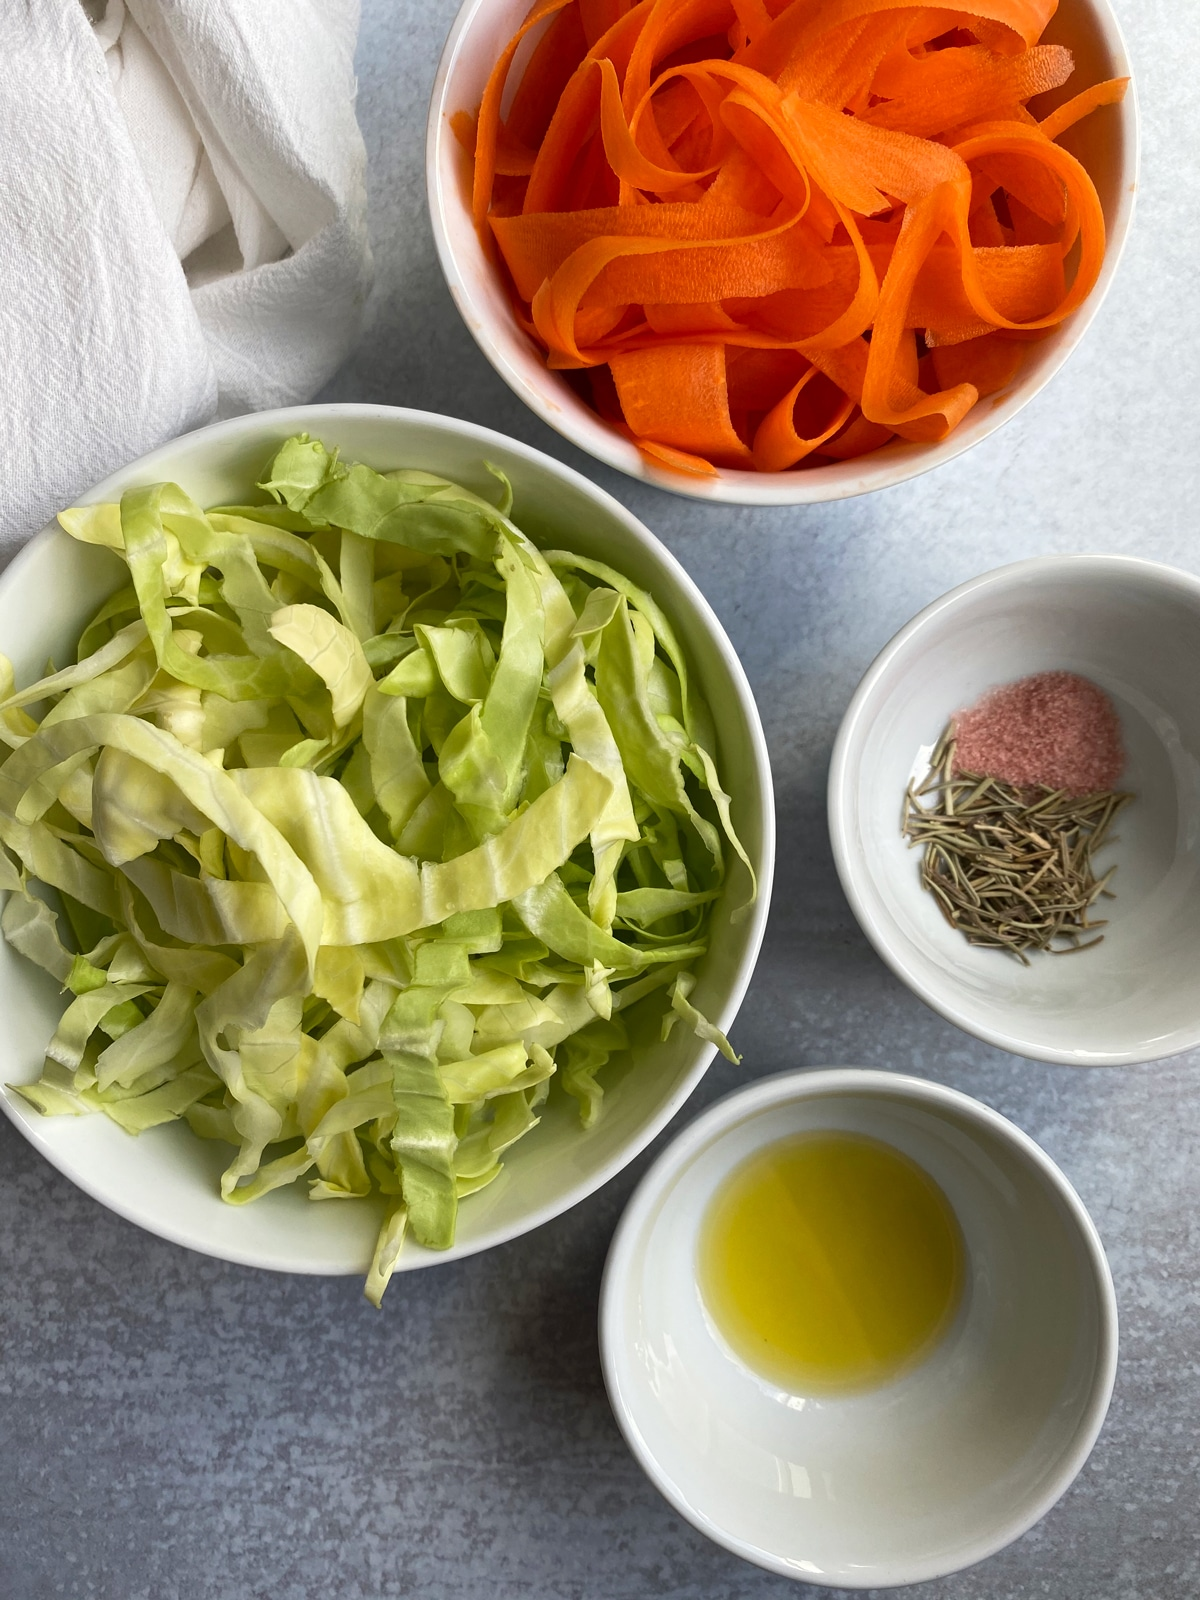 ingredients-in-carrot-cabbage-noodles